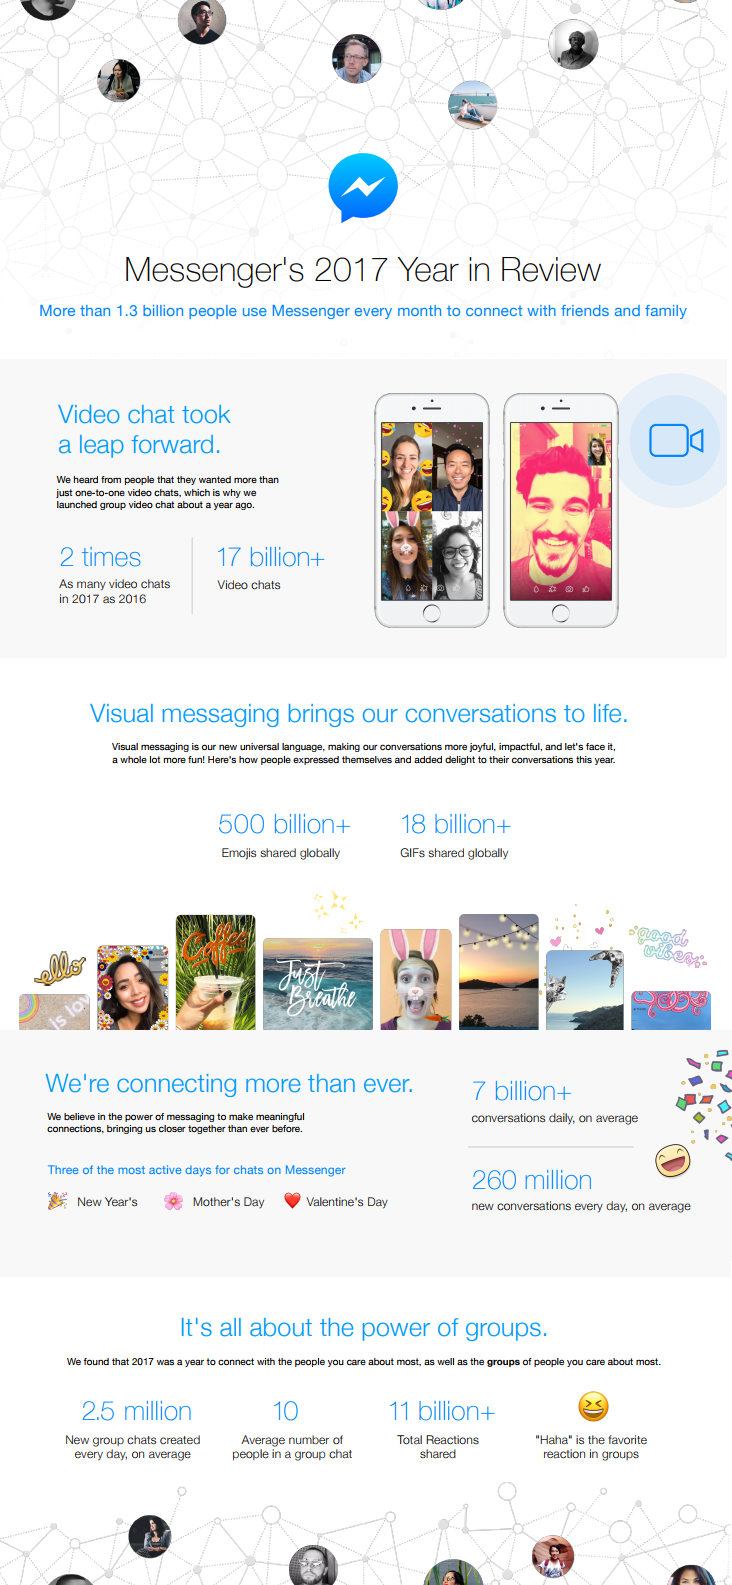 Facebook Messenger's 'Year in Review' [Infographic] | Social Media Today